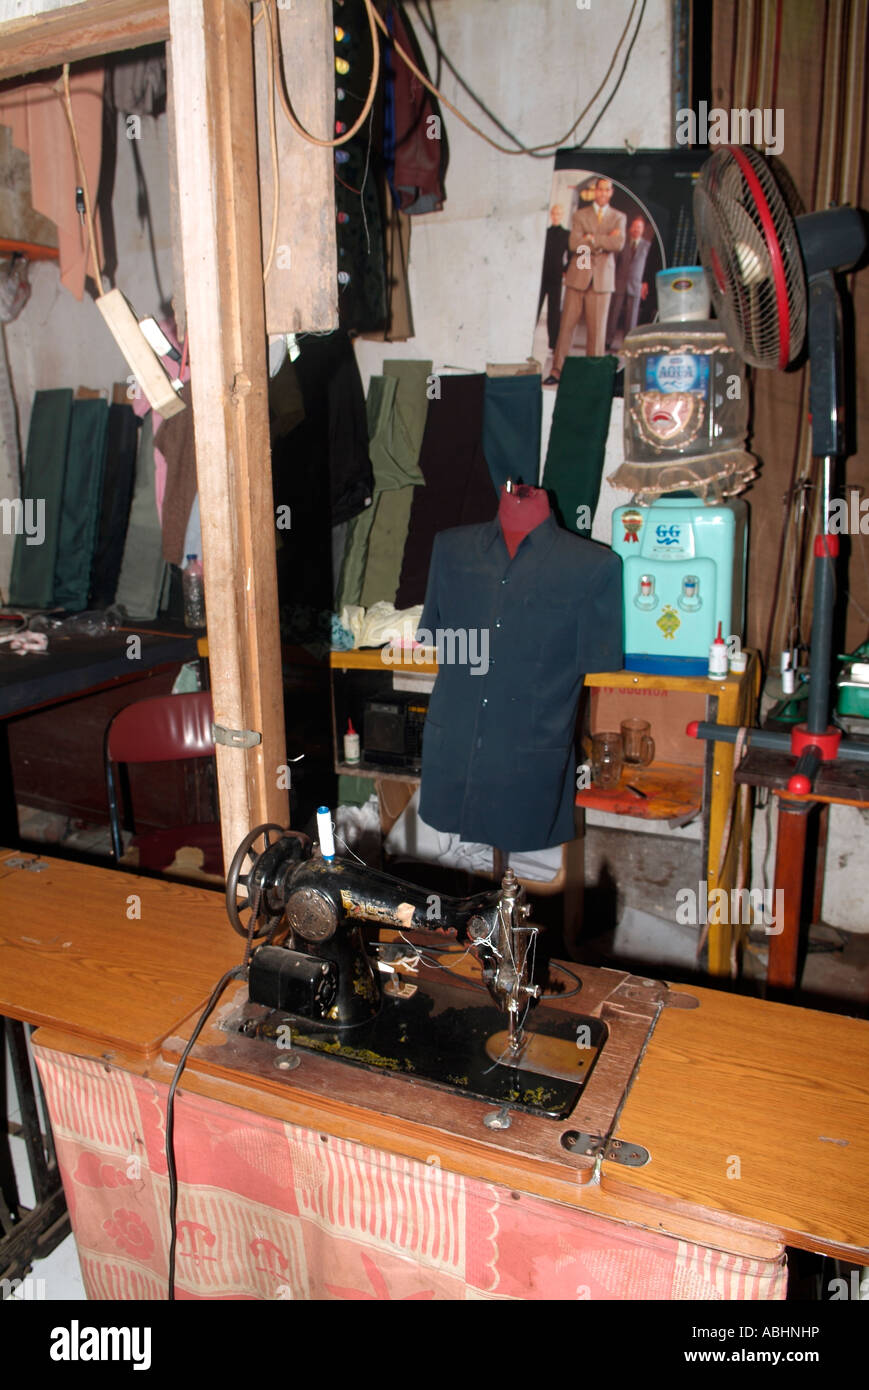 Local Market Tool >> Sewing Booth In A Local Market In Manado North Sulawesi Stock Photo